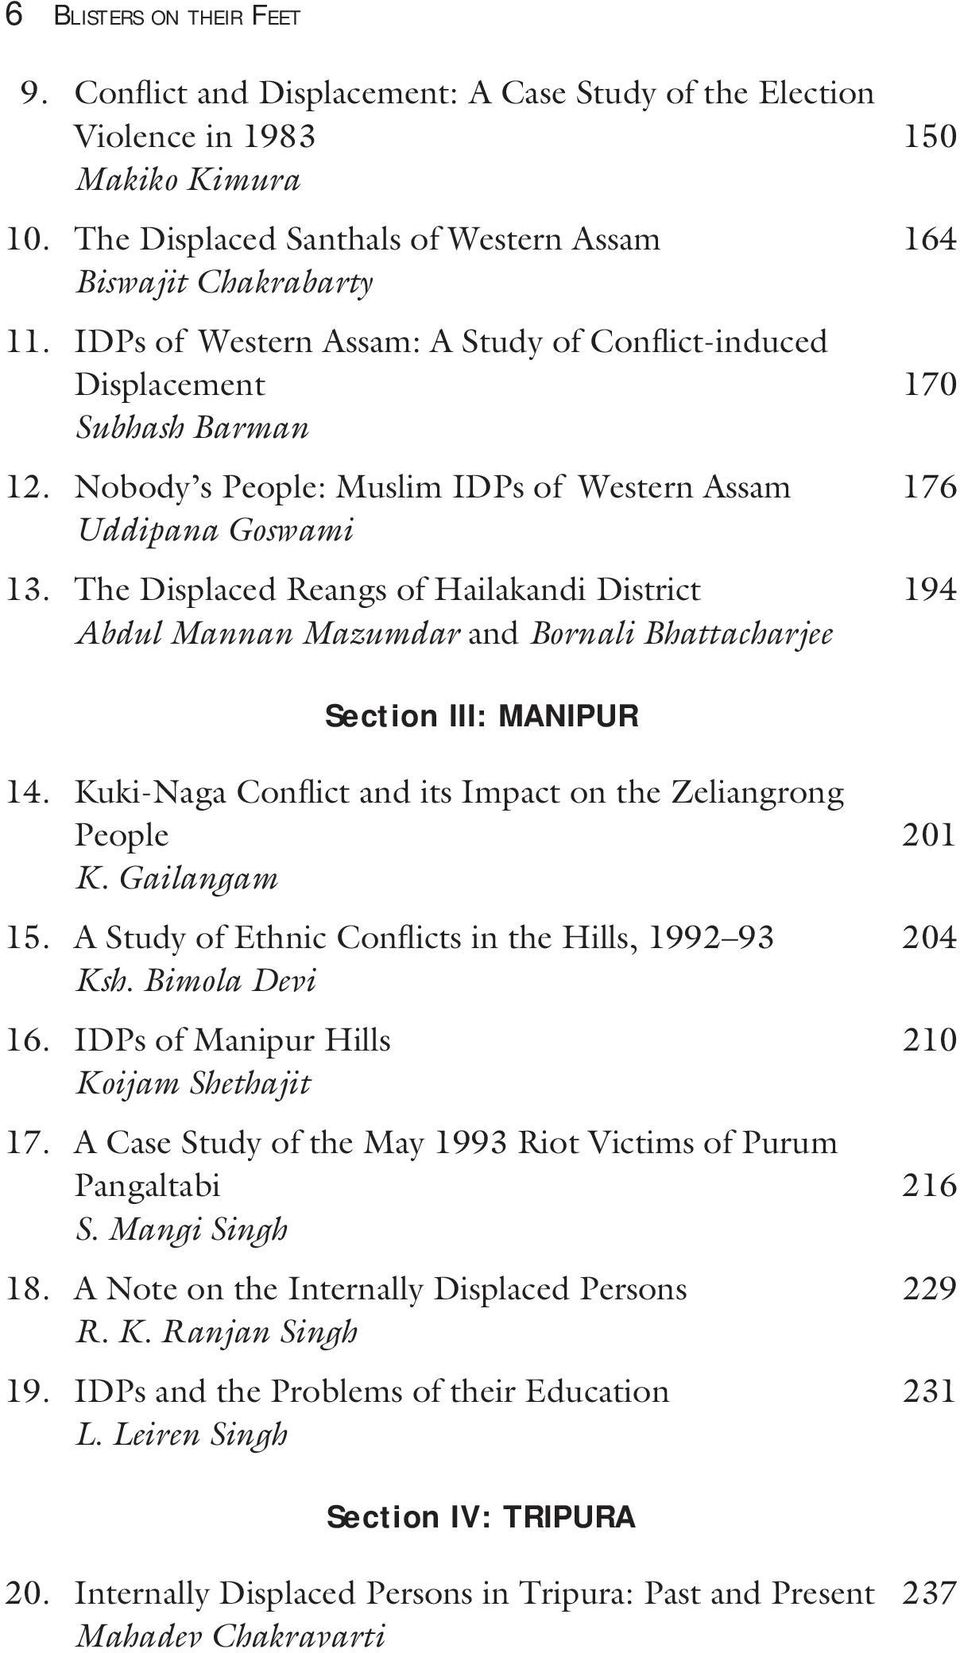 The Displaced Reangs of Hailakandi District 194 Abdul Mannan Mazumdar and Bornali Bhattacharjee Section III: MANIPUR 14. Kuki-Naga Conflict and its Impact on the Zeliangrong People 201 K.